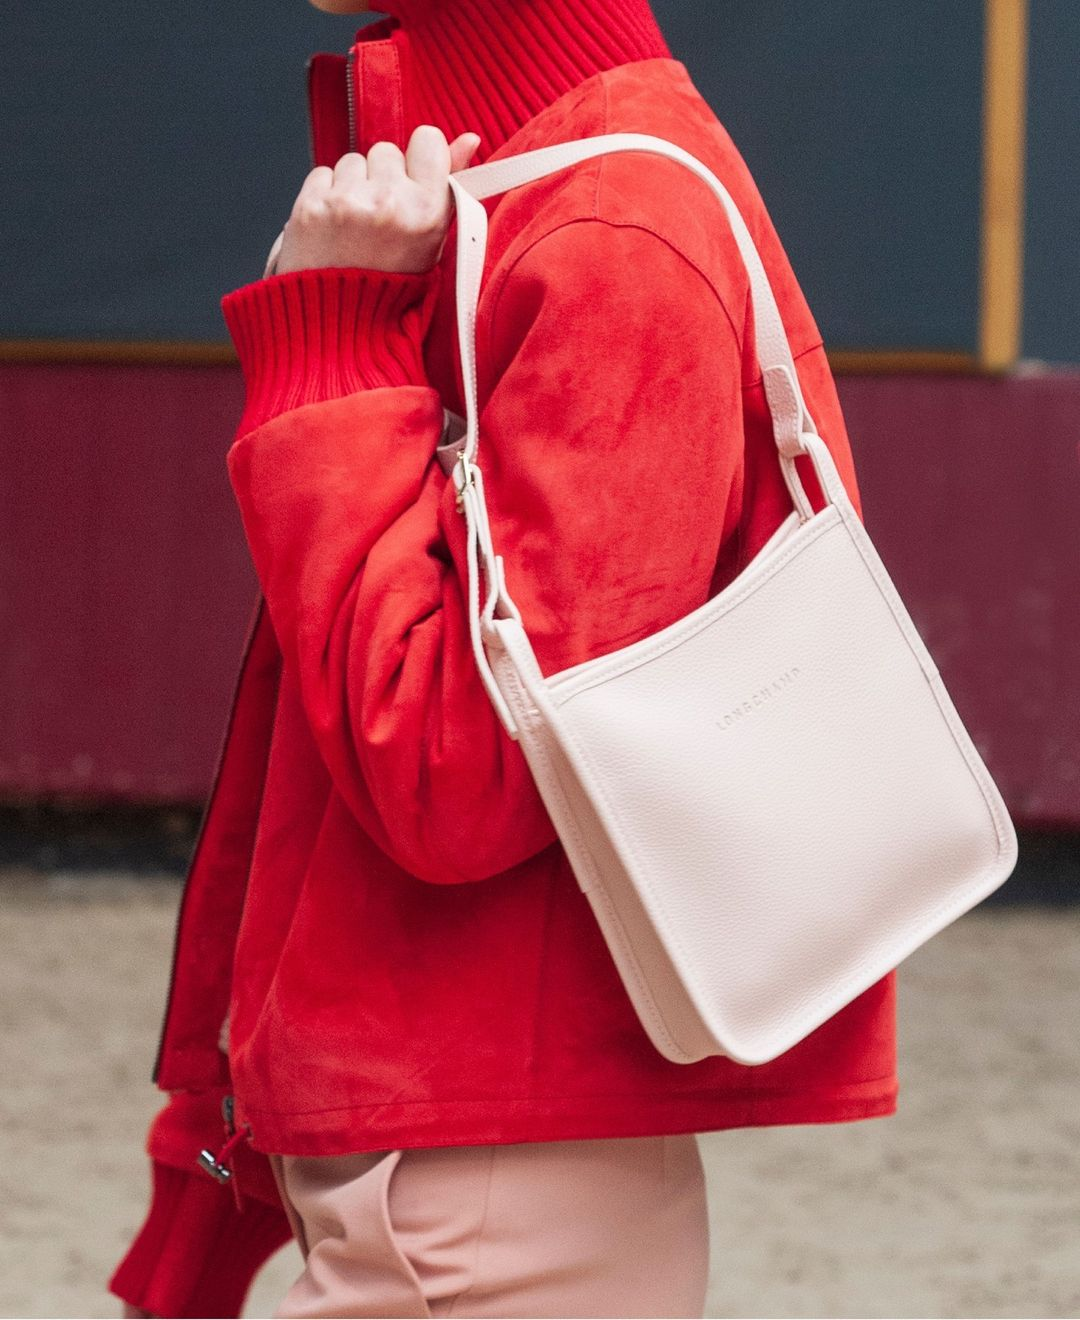 longchamp fw 21 collection and interview with sophie delafontaine